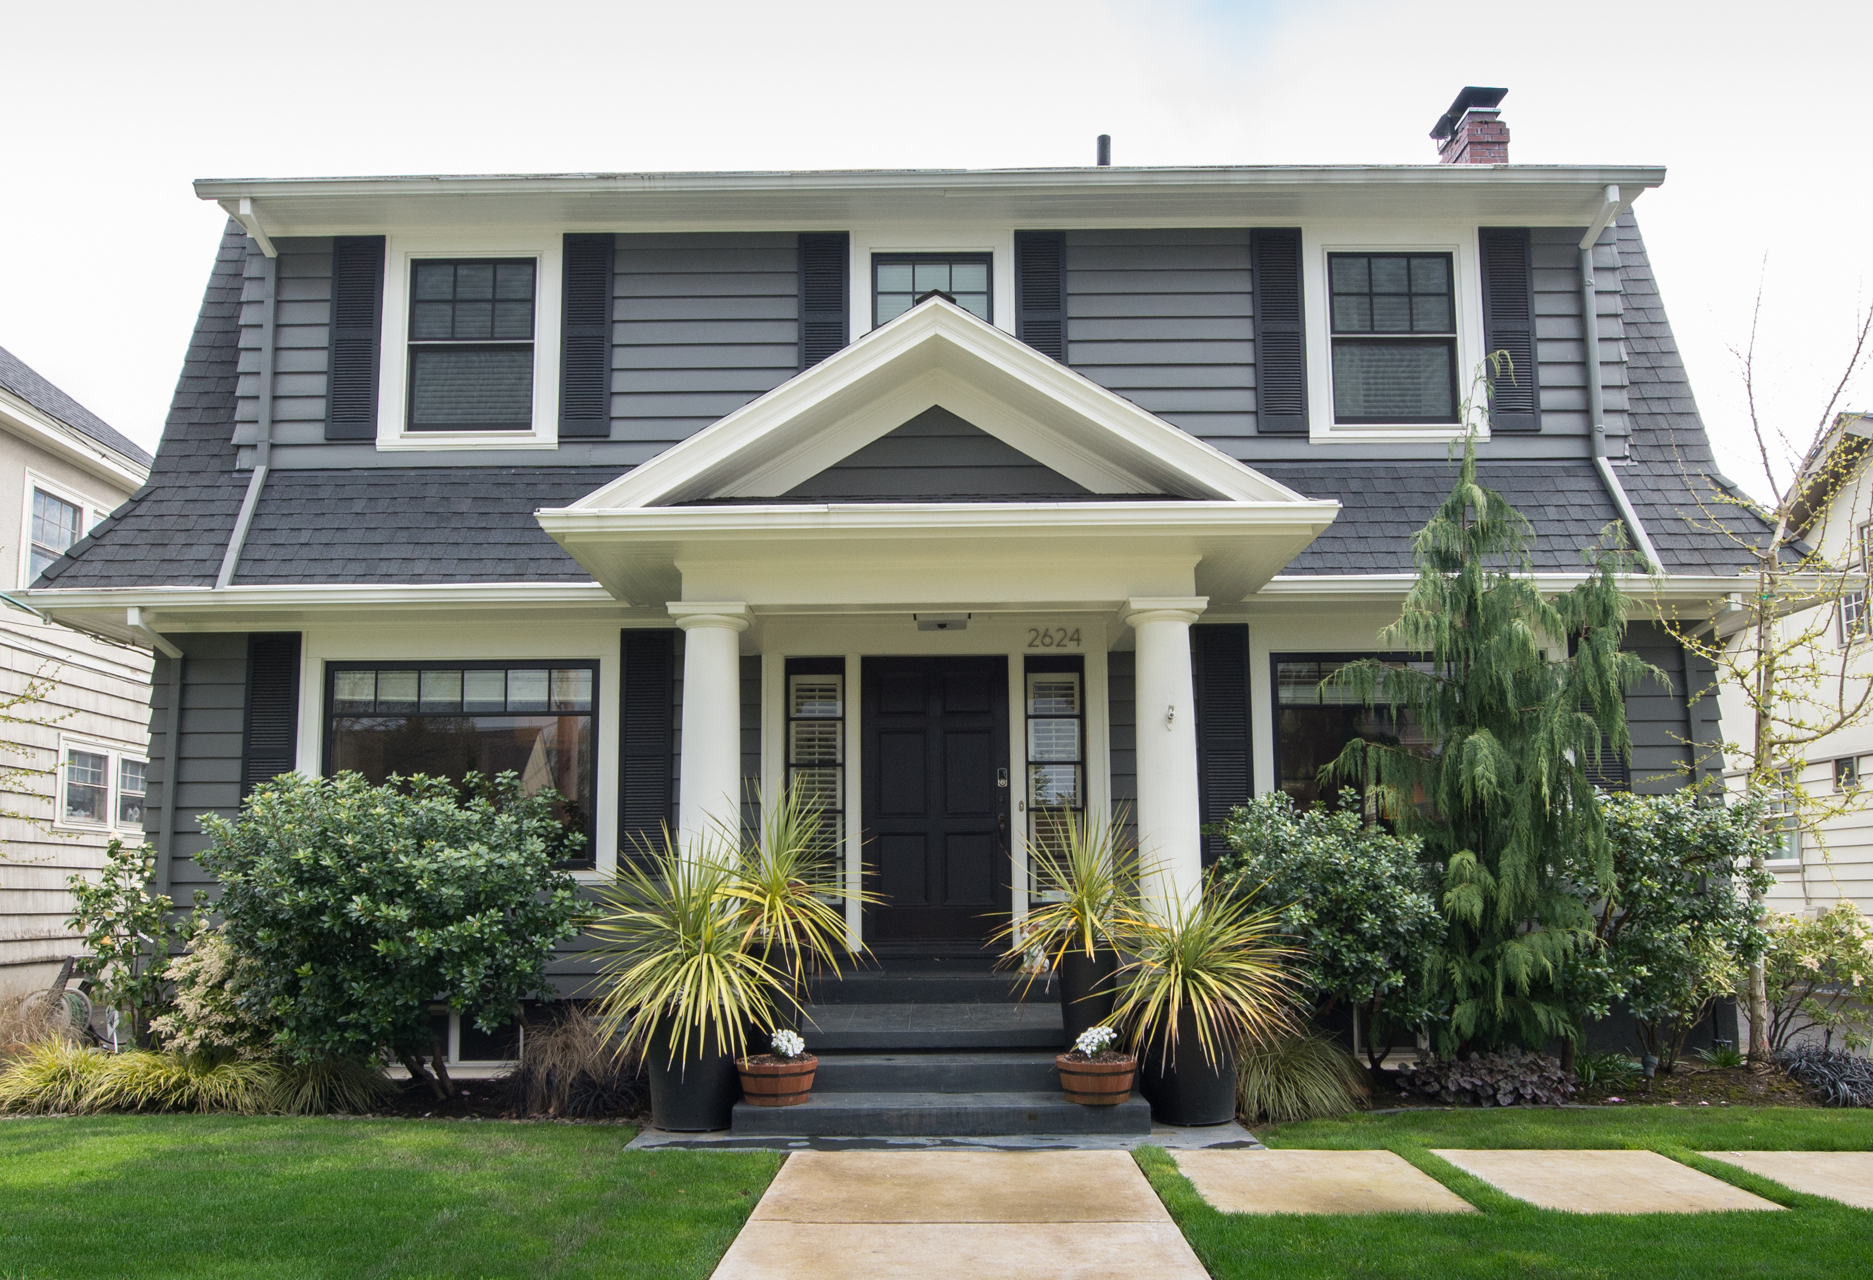 Irvington Charmer with all the updates. 4bdrm, 3.5 ba. Close-in NE Portland